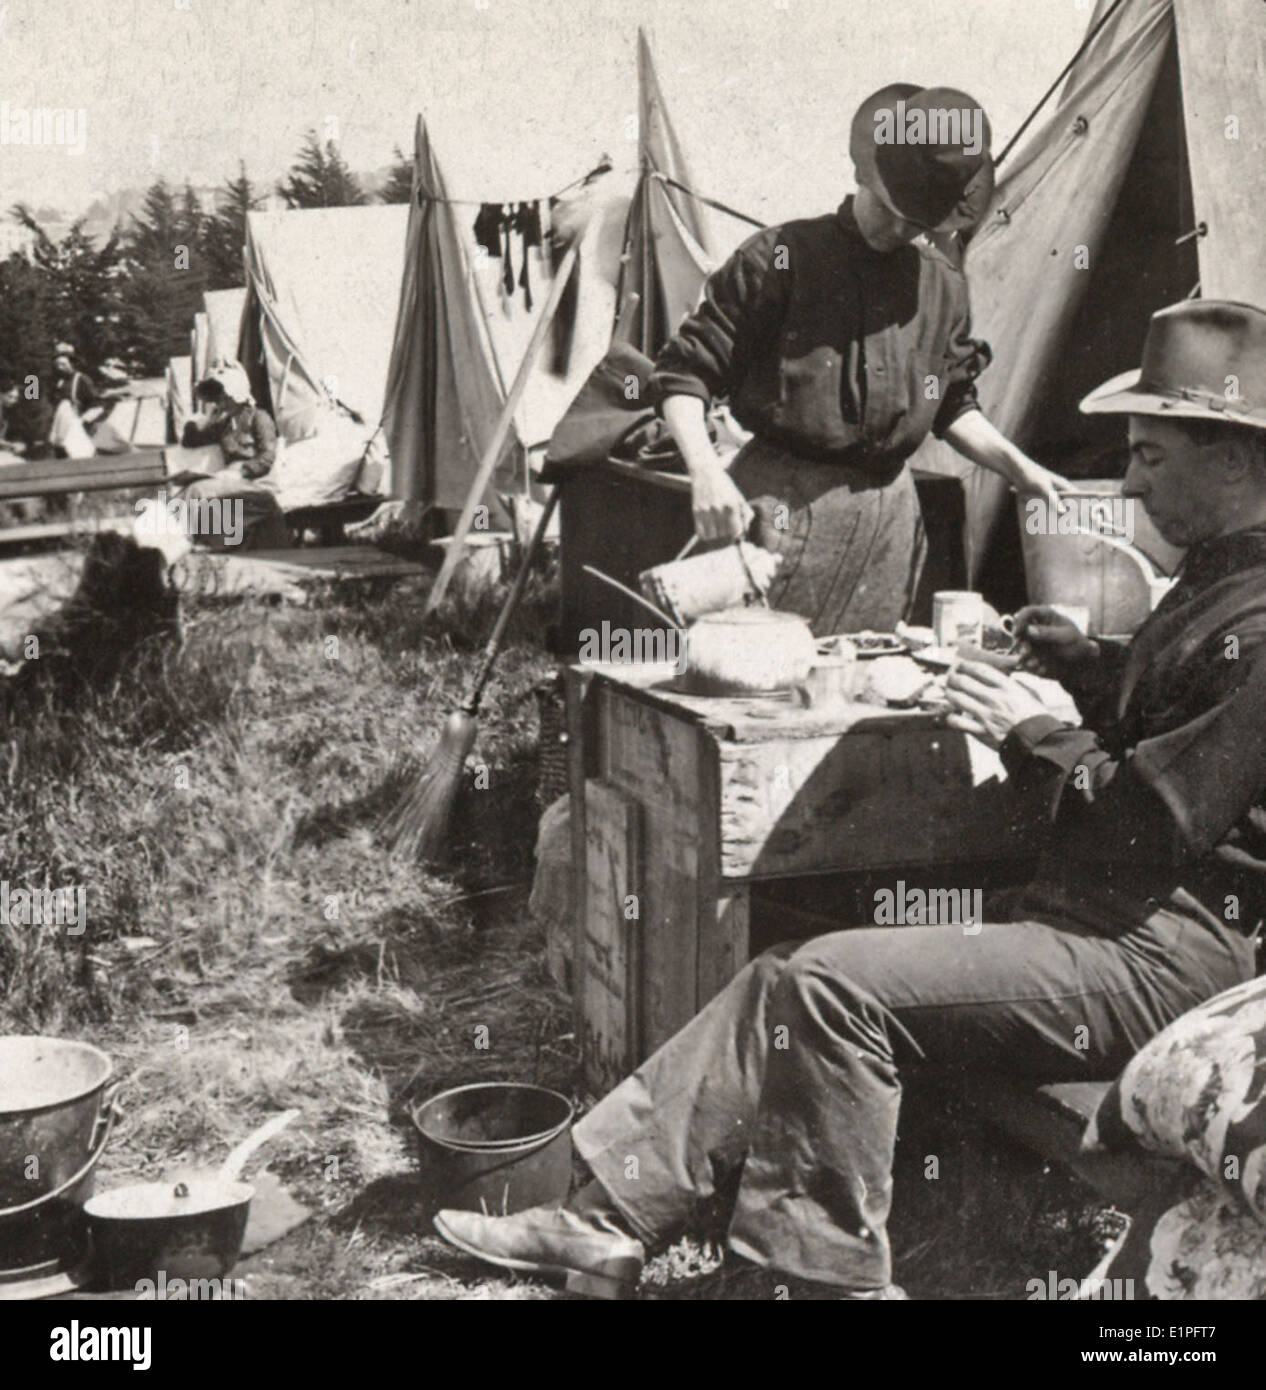 Home life among the refugees - a street of tents in the Presidio - San Francisco disaster - April 1906 - Stock Image